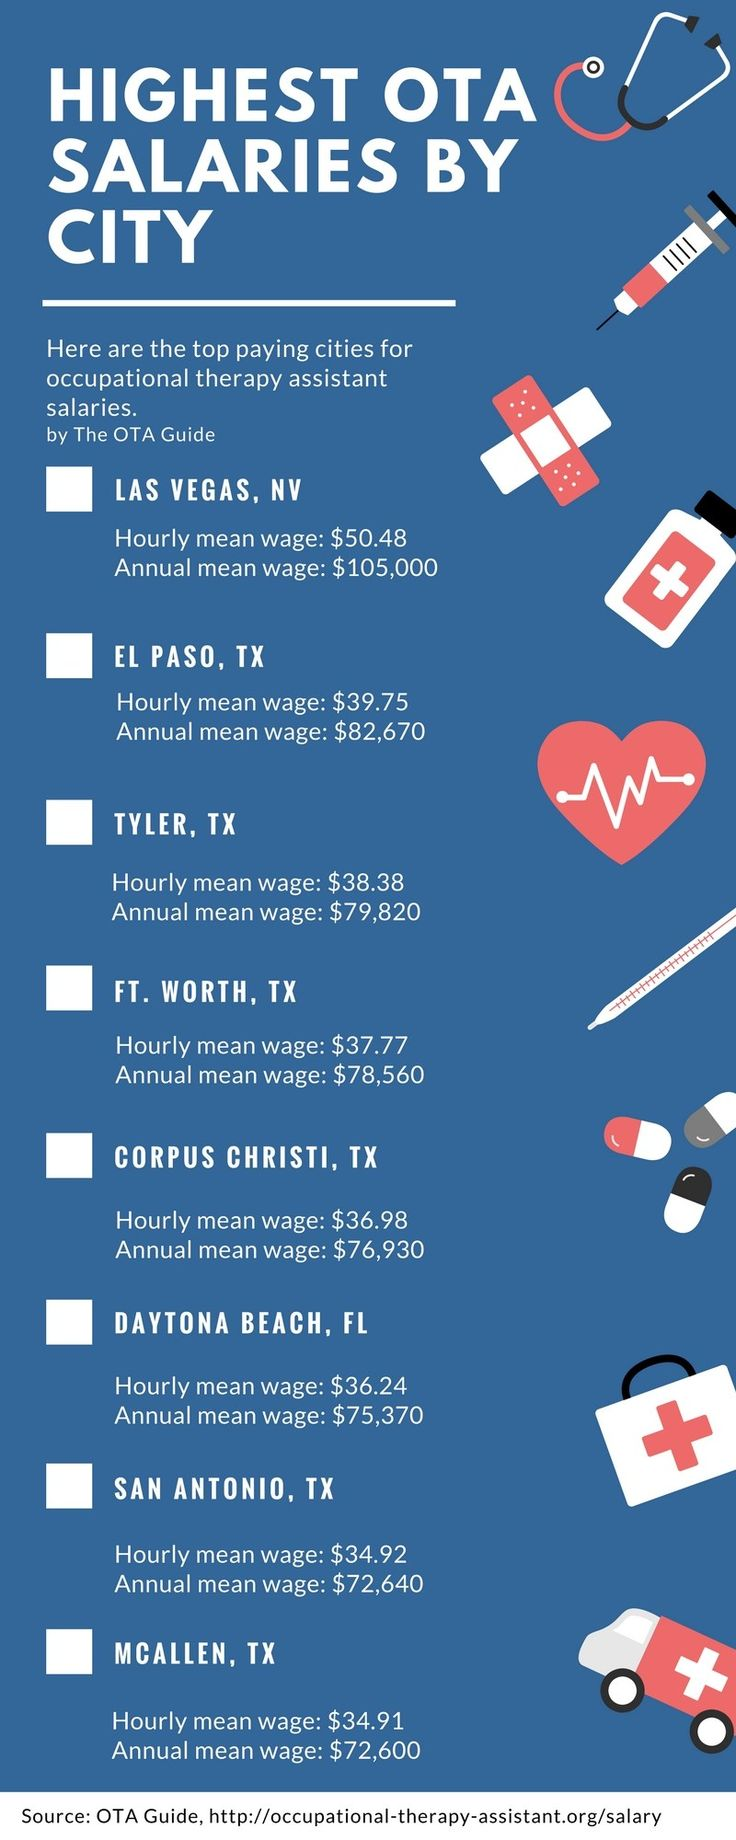 Top 8 Highest Paying cities for Occupational Therapy Assistants See Salary data for entire U.S. here: http://occupational-therapy-assistant.org/how-much-is-a-occupational-therapist-assistant-salary/